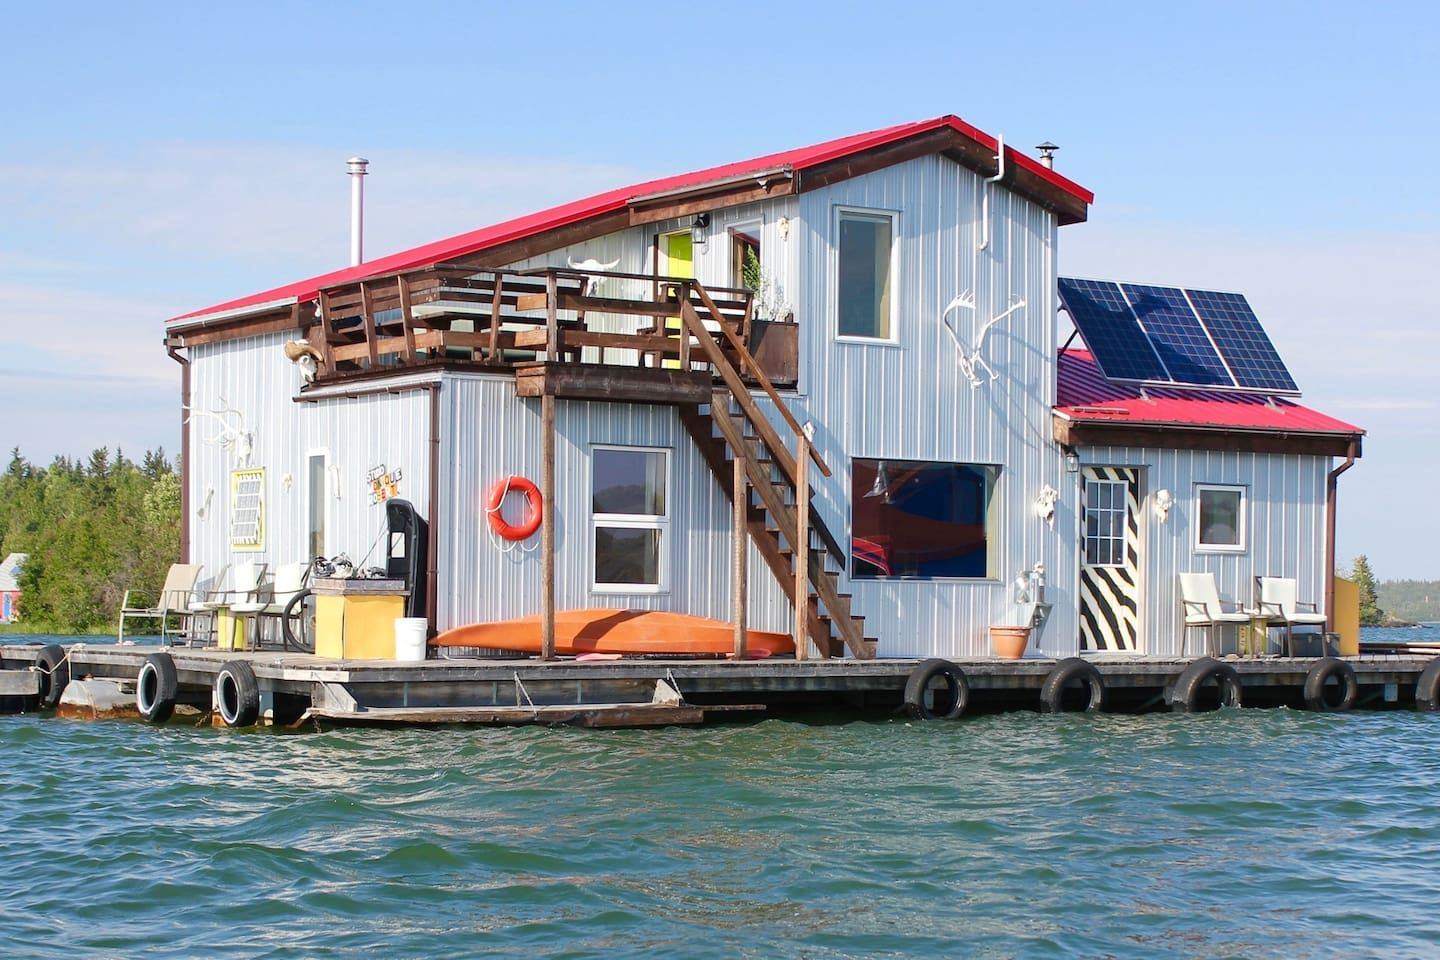 Mo's Houseboat B&B - Bed & Breakfasts for Rent in Yellowknife